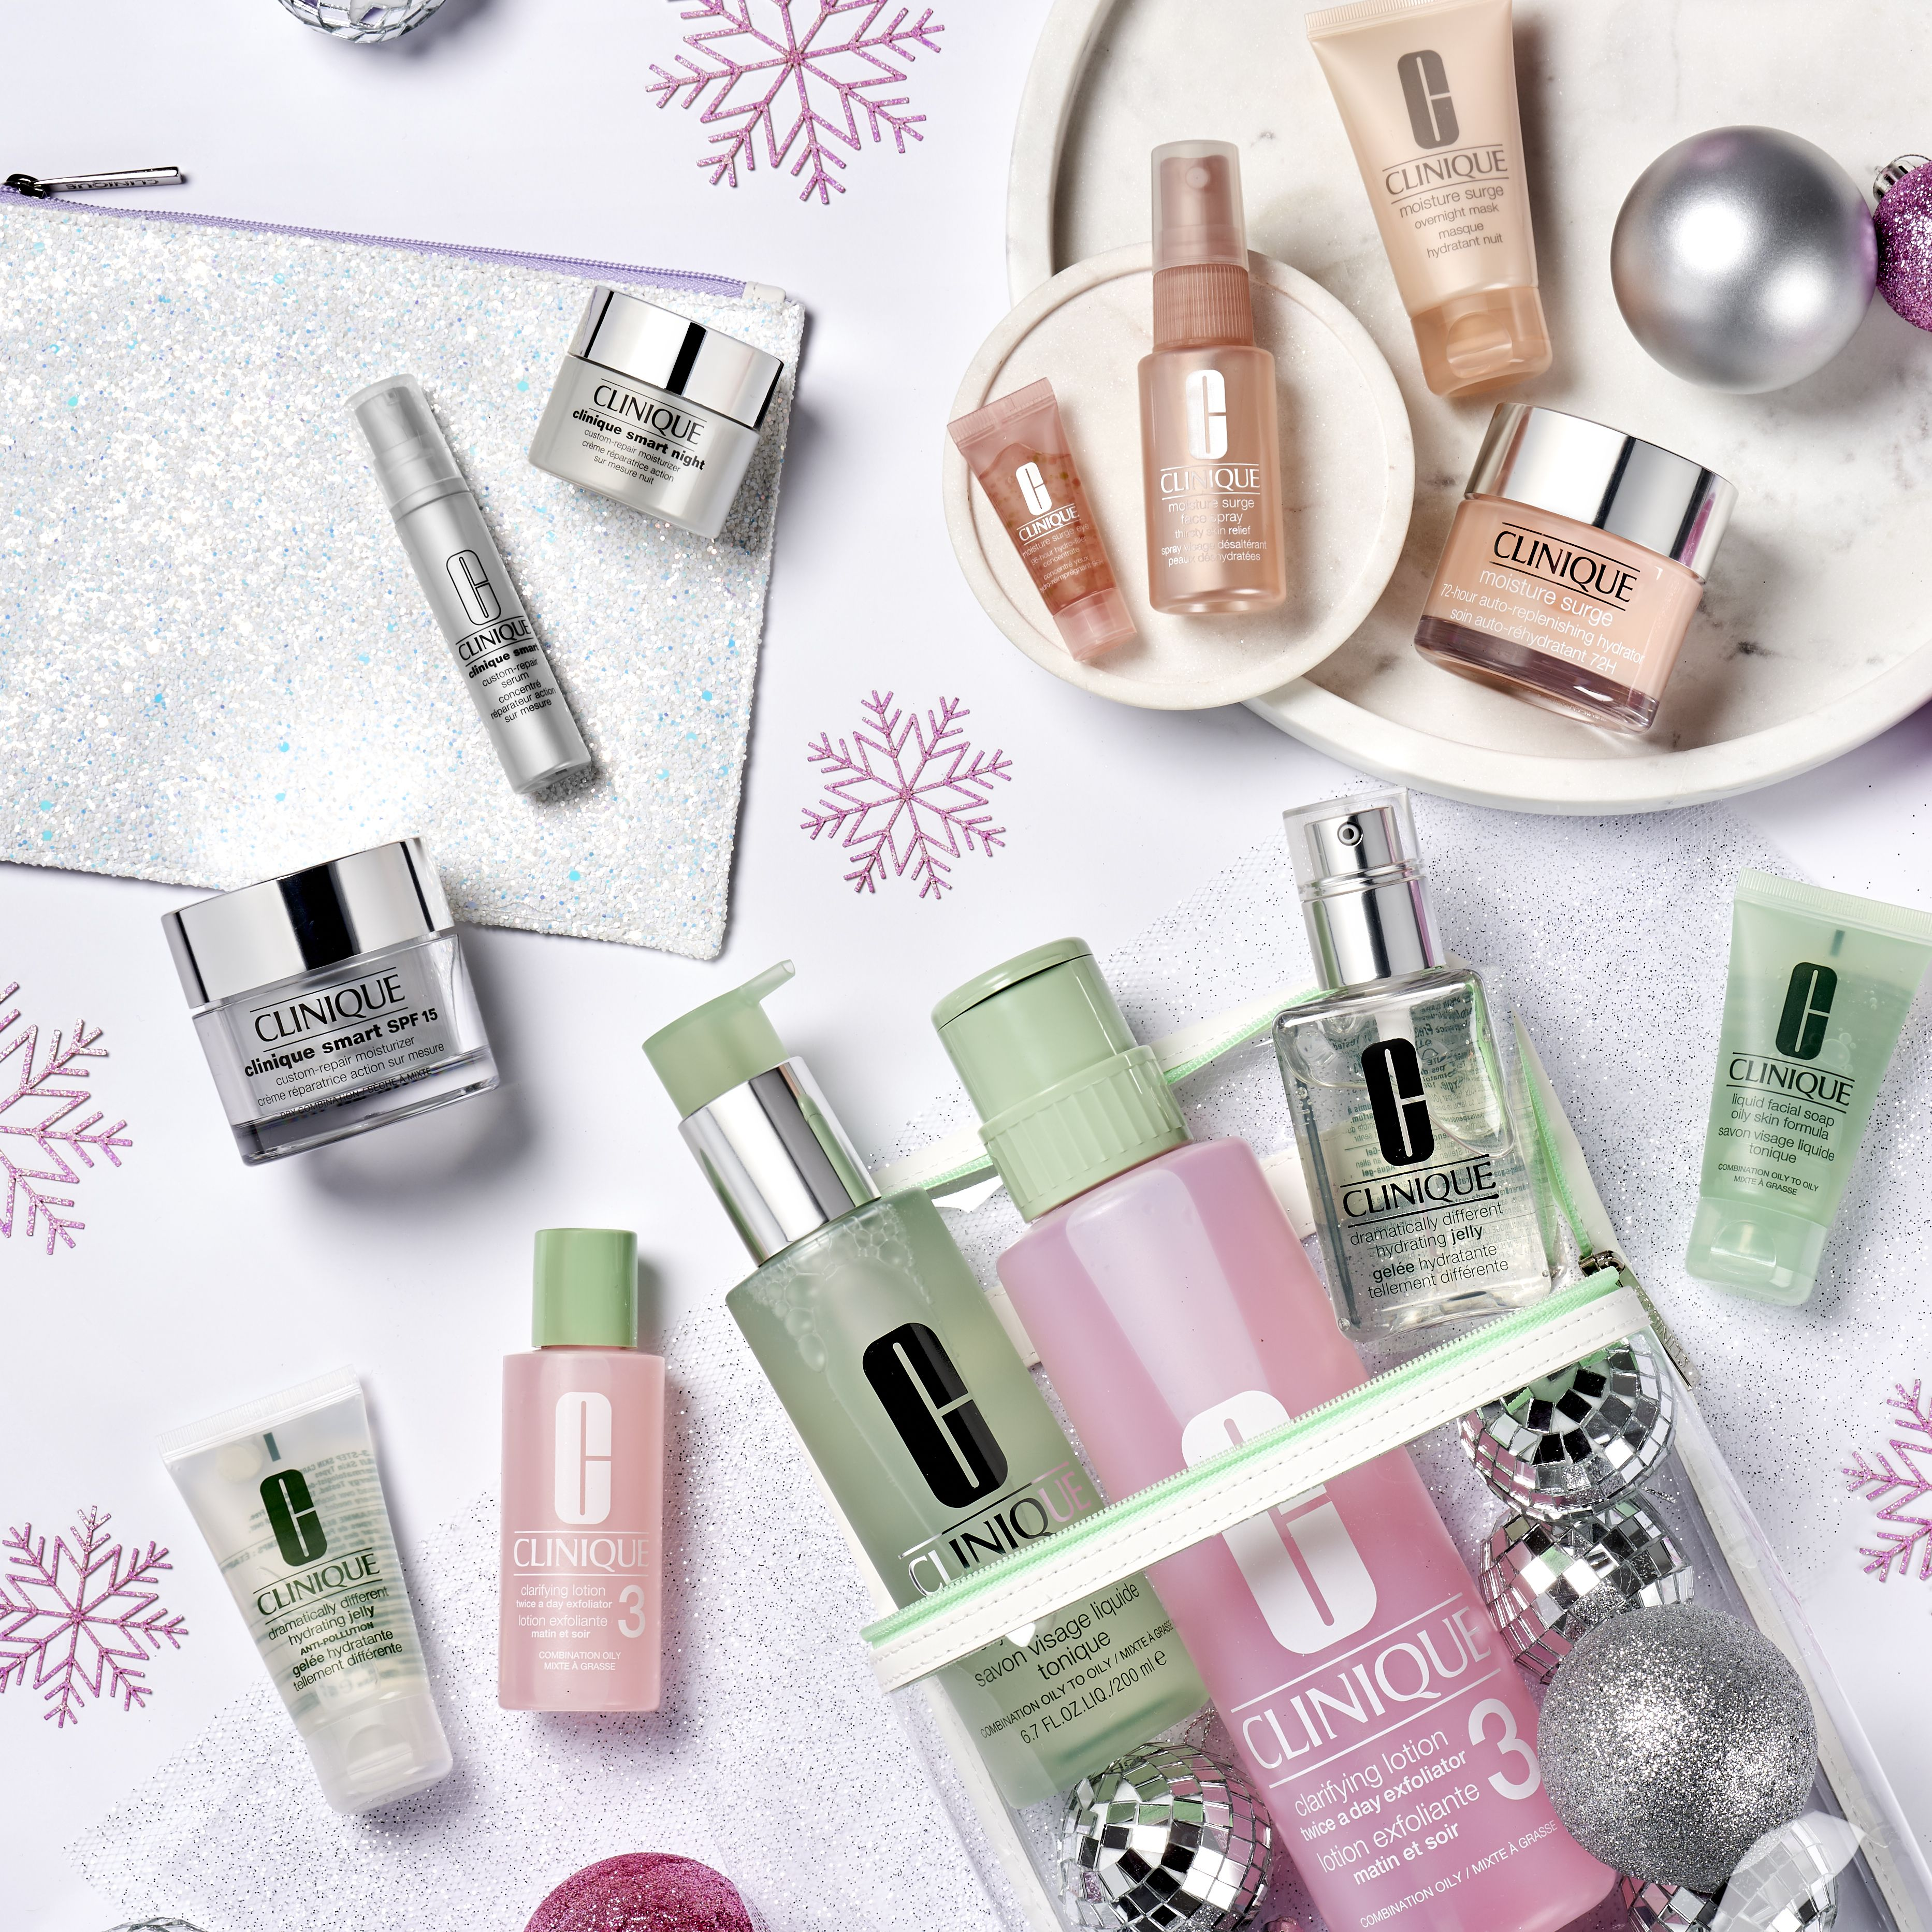 Clinique Twice as Happy Christmas Gift